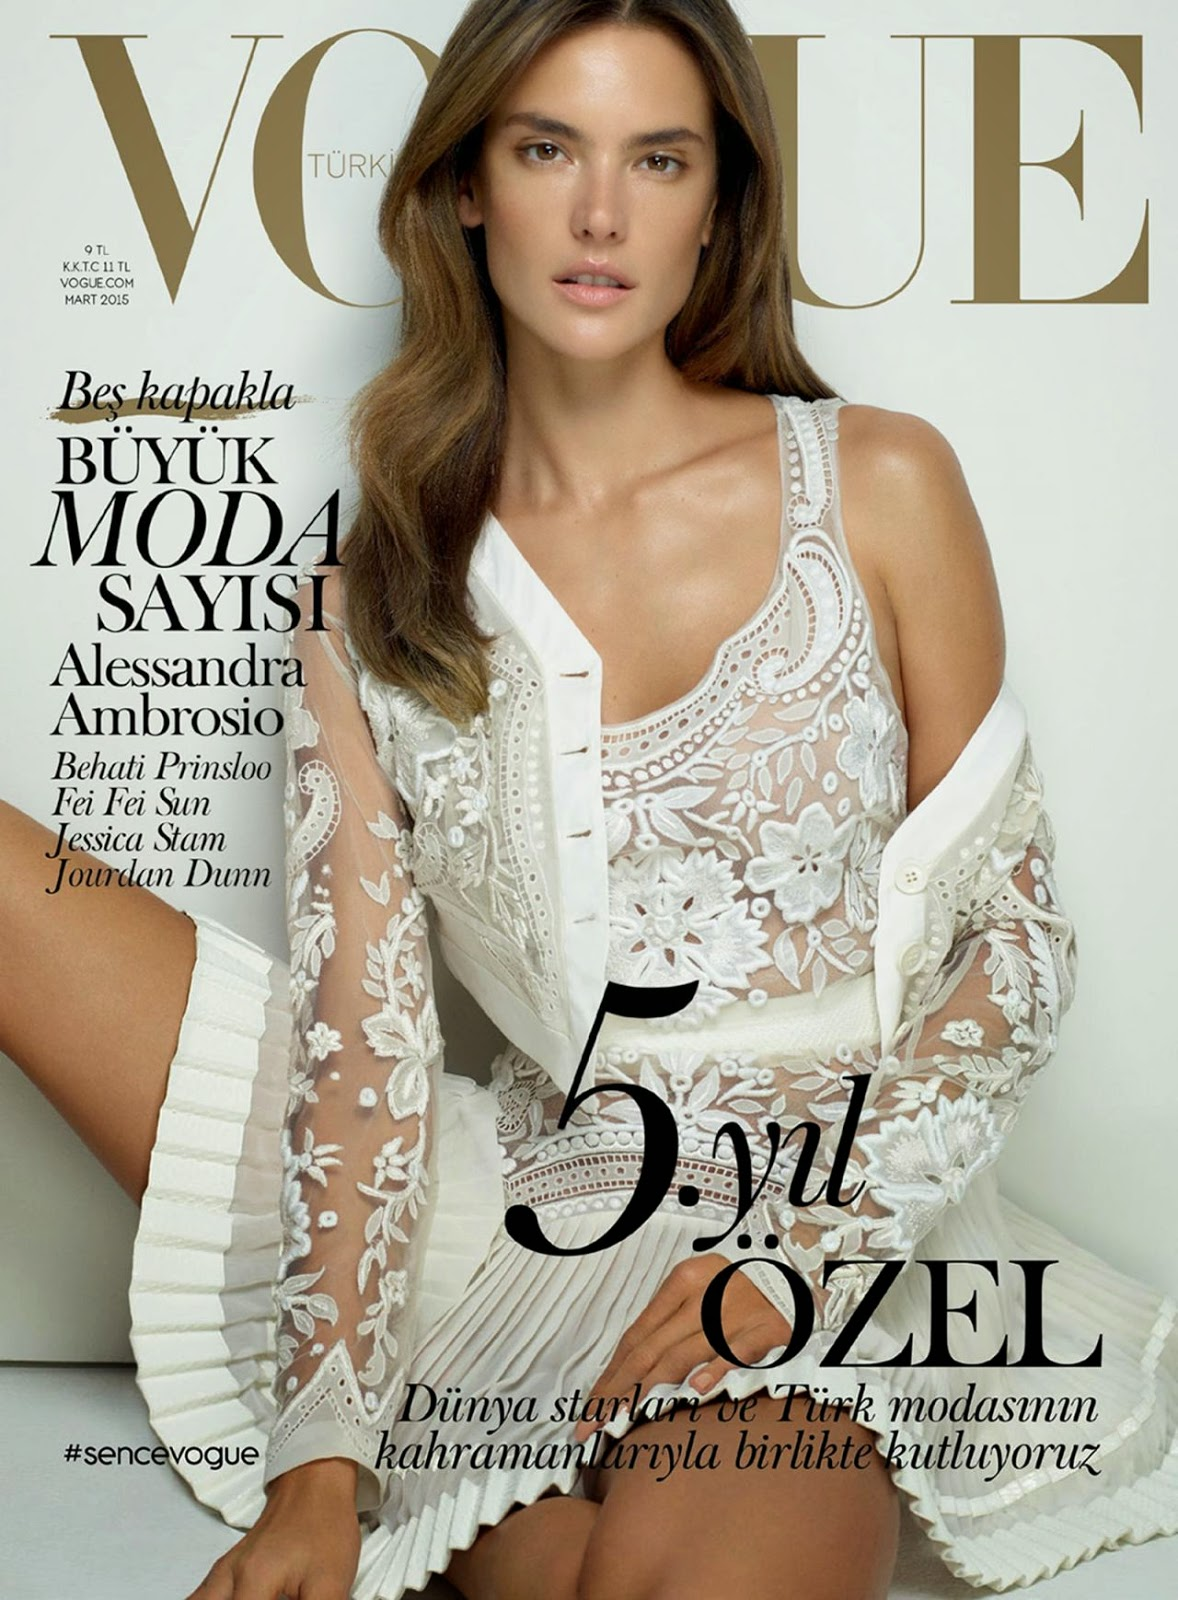 Model @ Alessandra Ambrosio - Vogue Magazine Turkey, March 2015